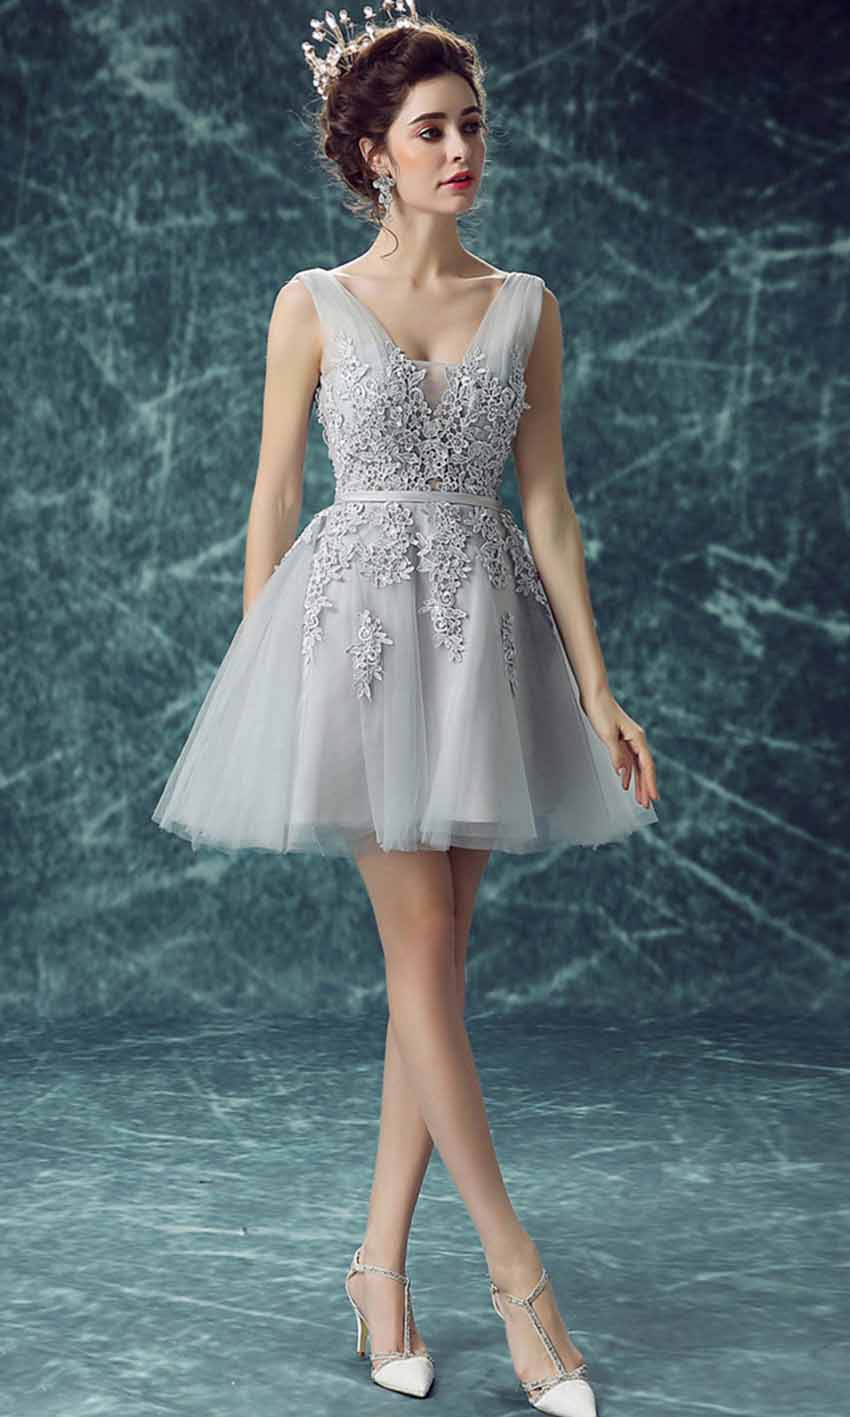 Grey Short Prom Dresses with Applique Lace Up KSP452 [KSP452 ...